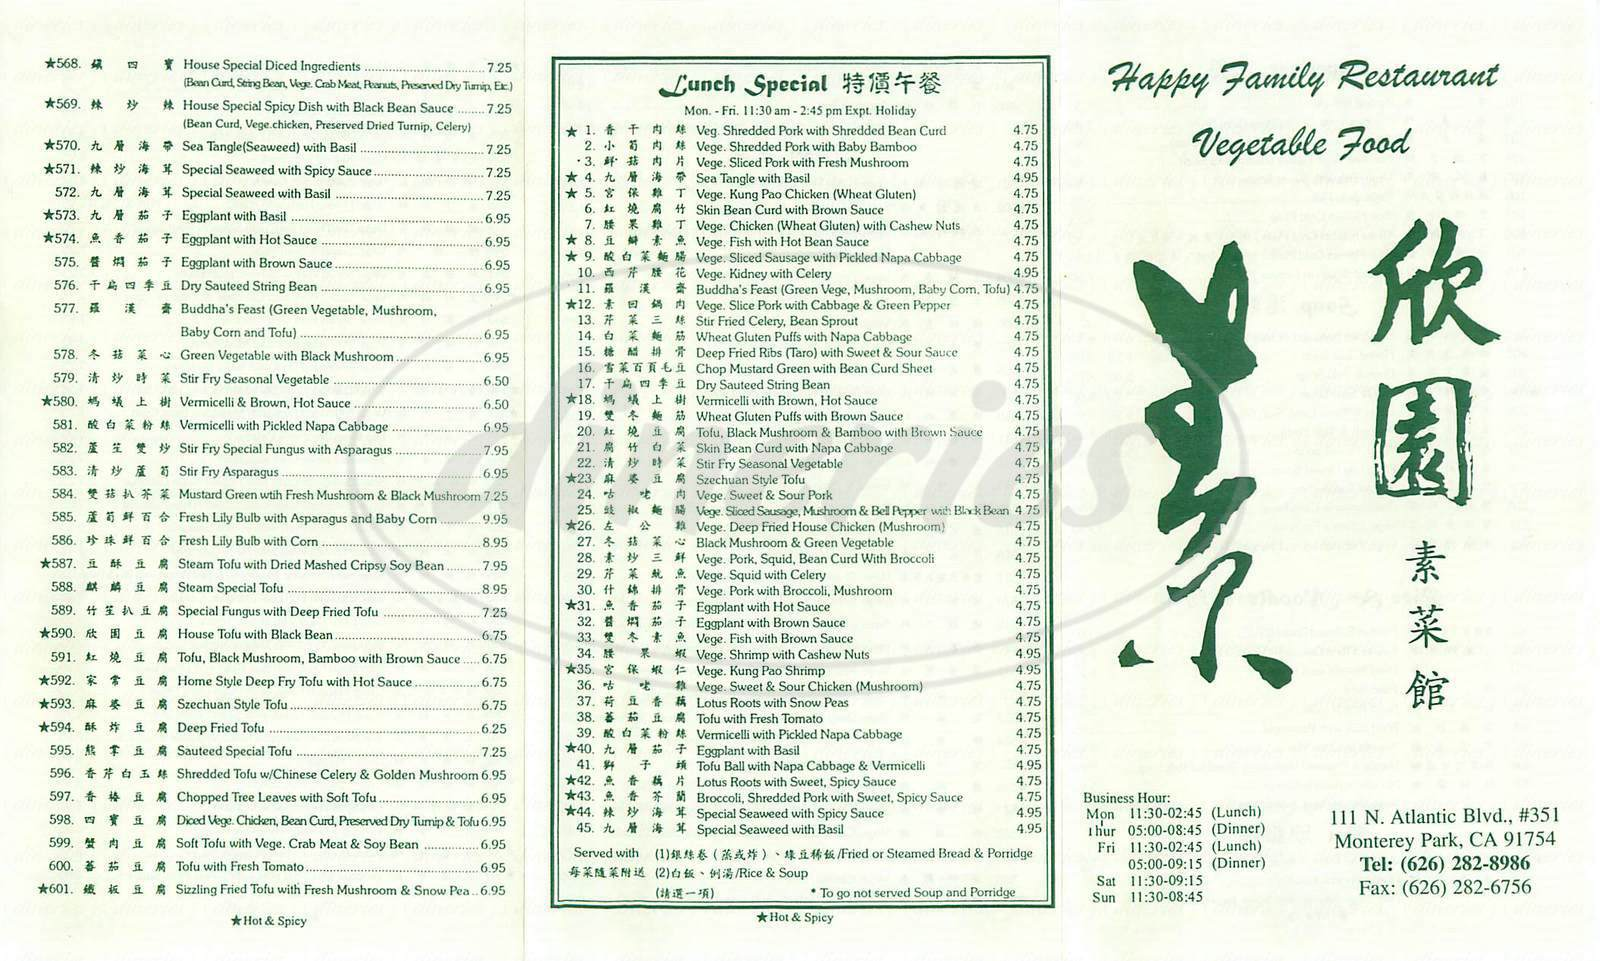 menu for Happy Family Restaurant